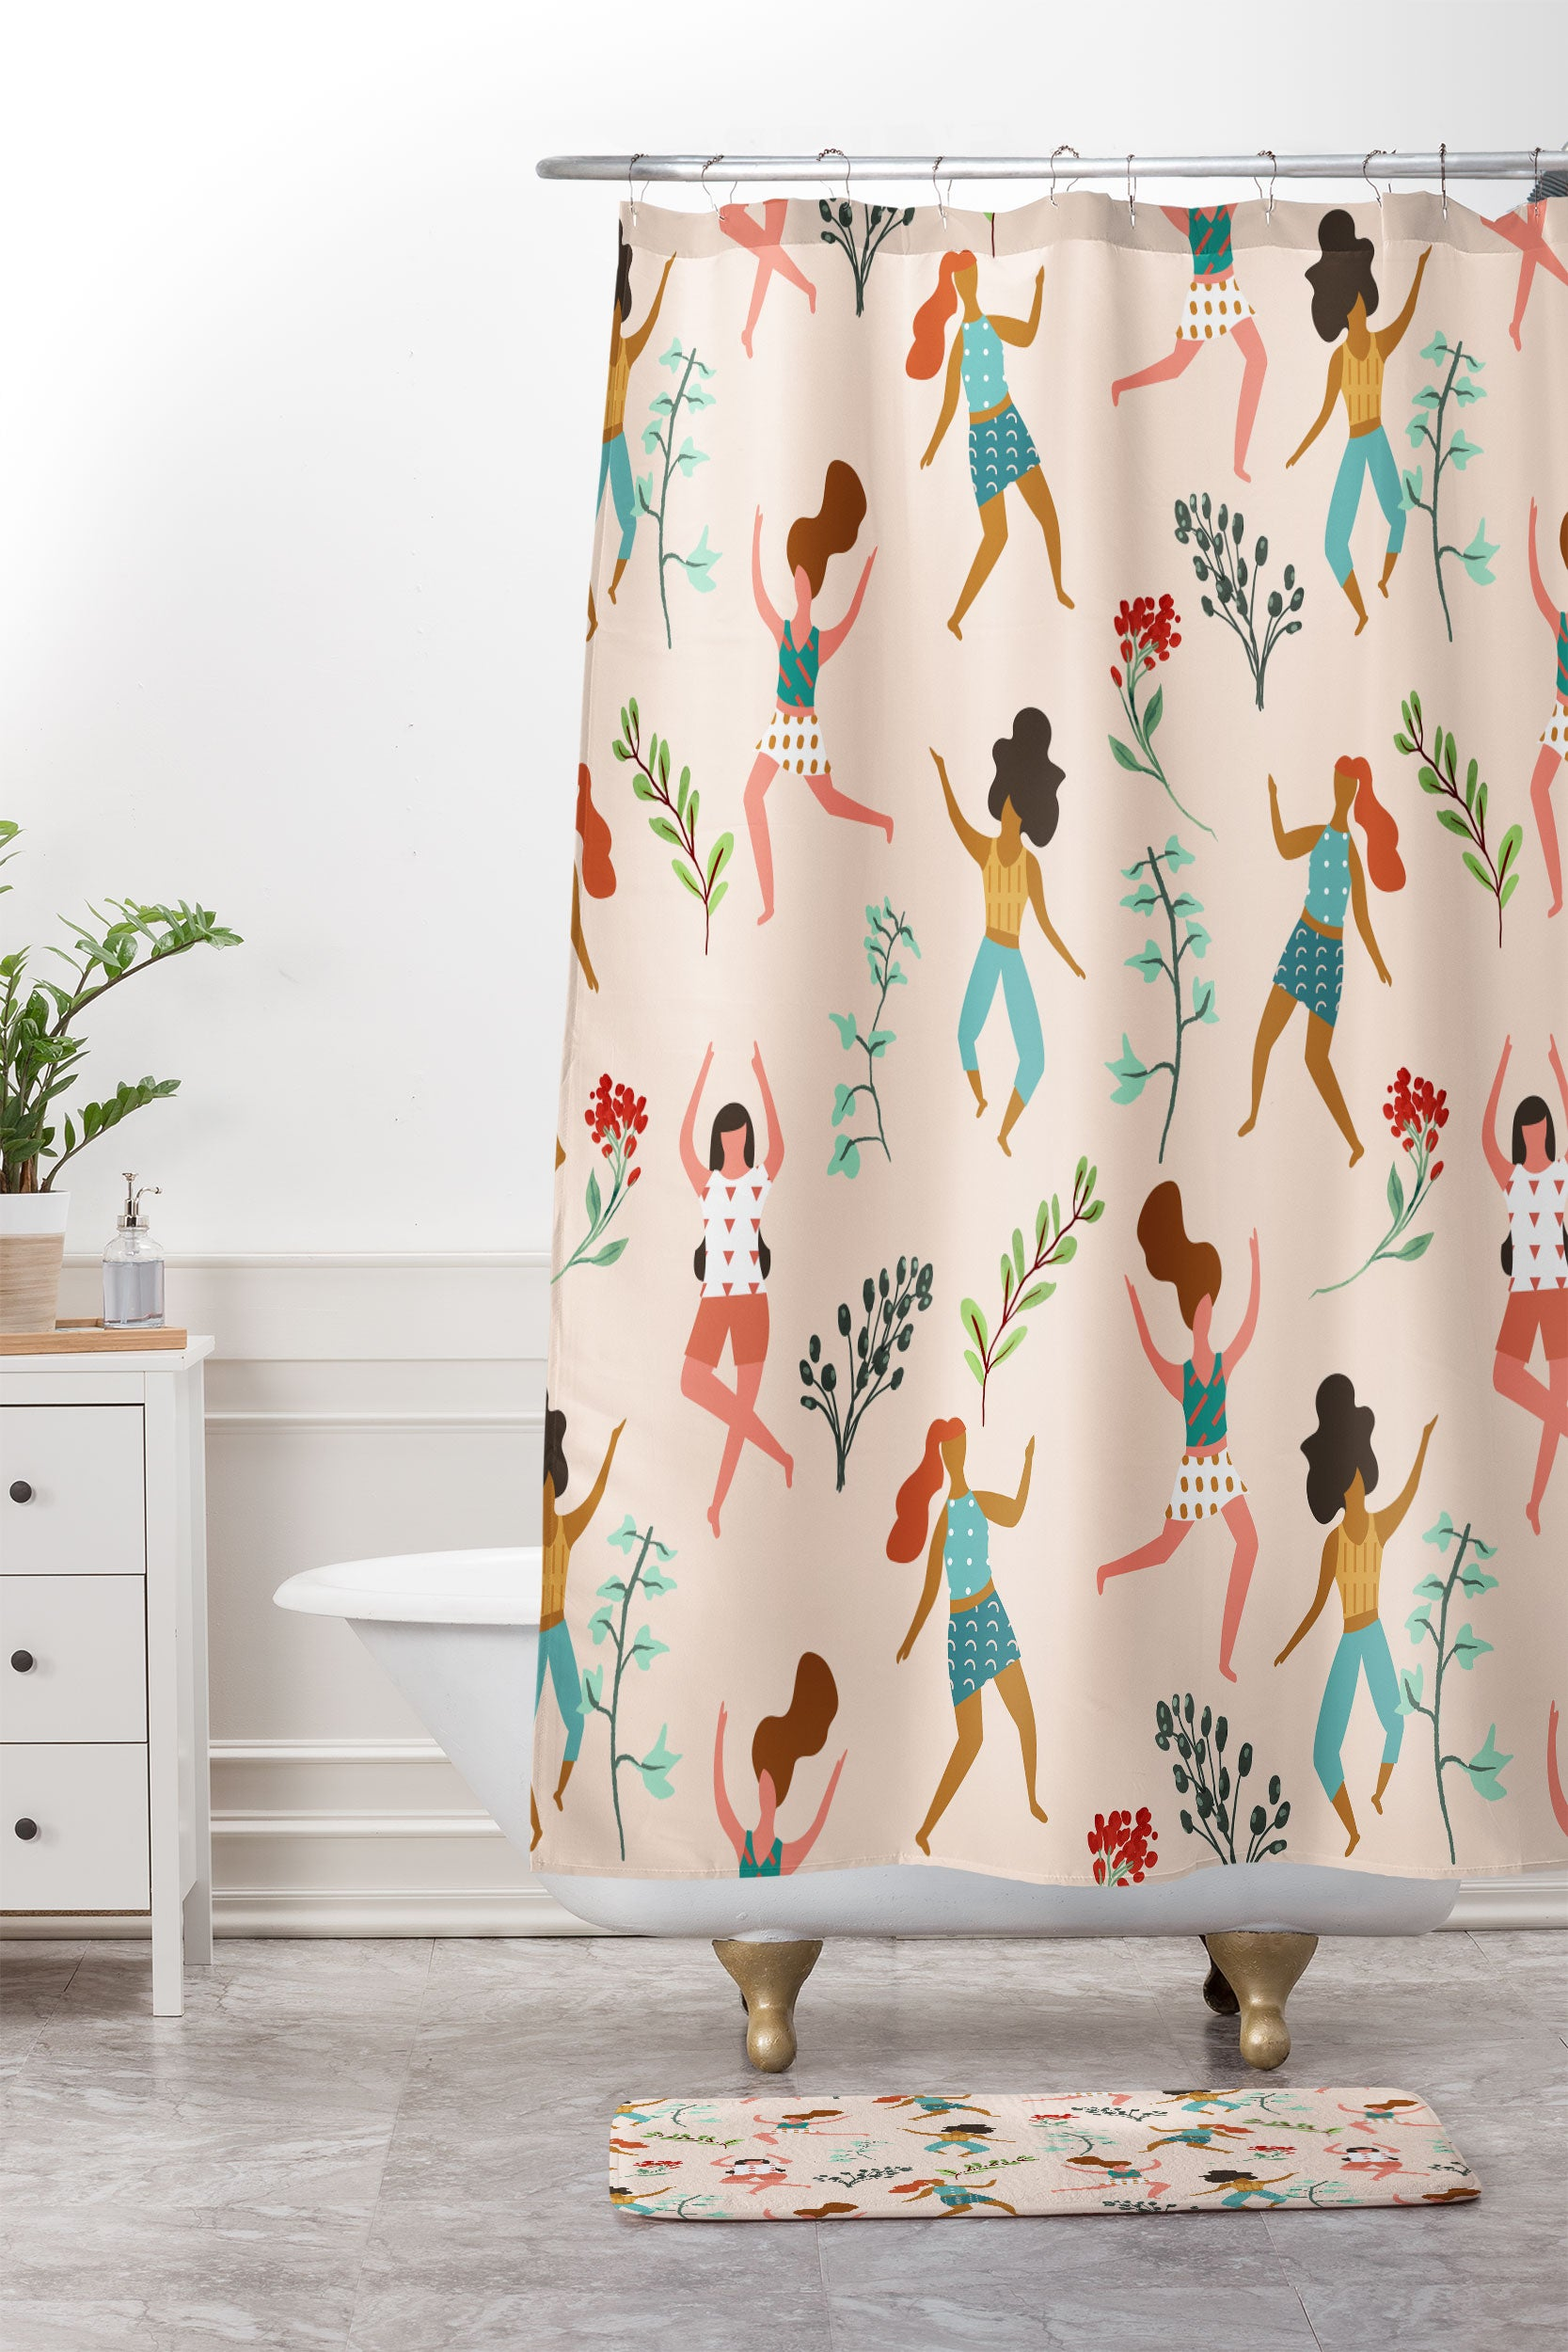 83 Oranges Central Park Zumba Shower Curtain And Mat